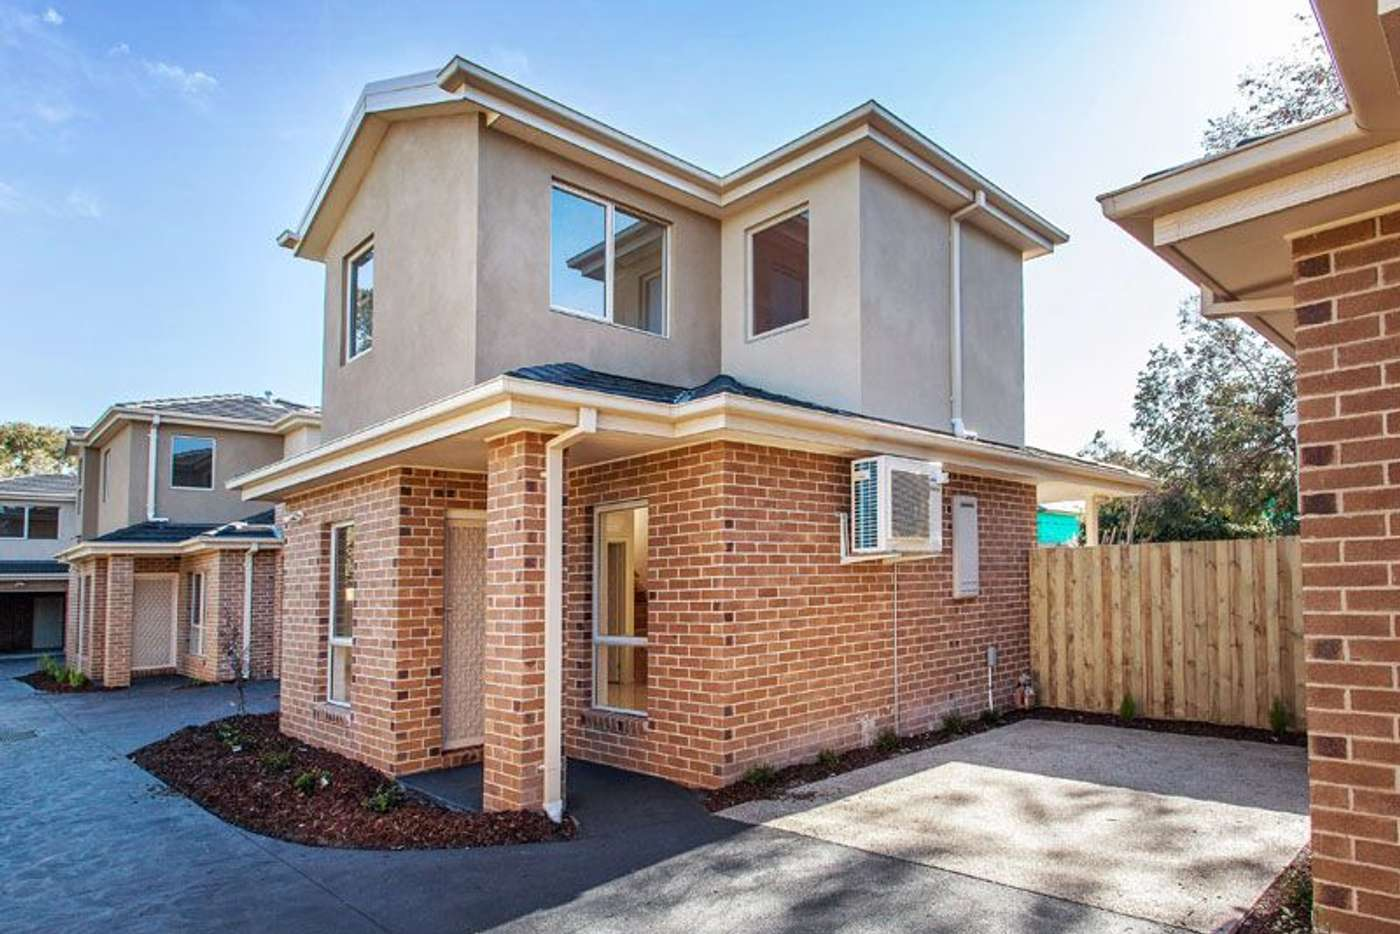 Main view of Homely townhouse listing, 5/8 Leman Crescent, Noble Park VIC 3174